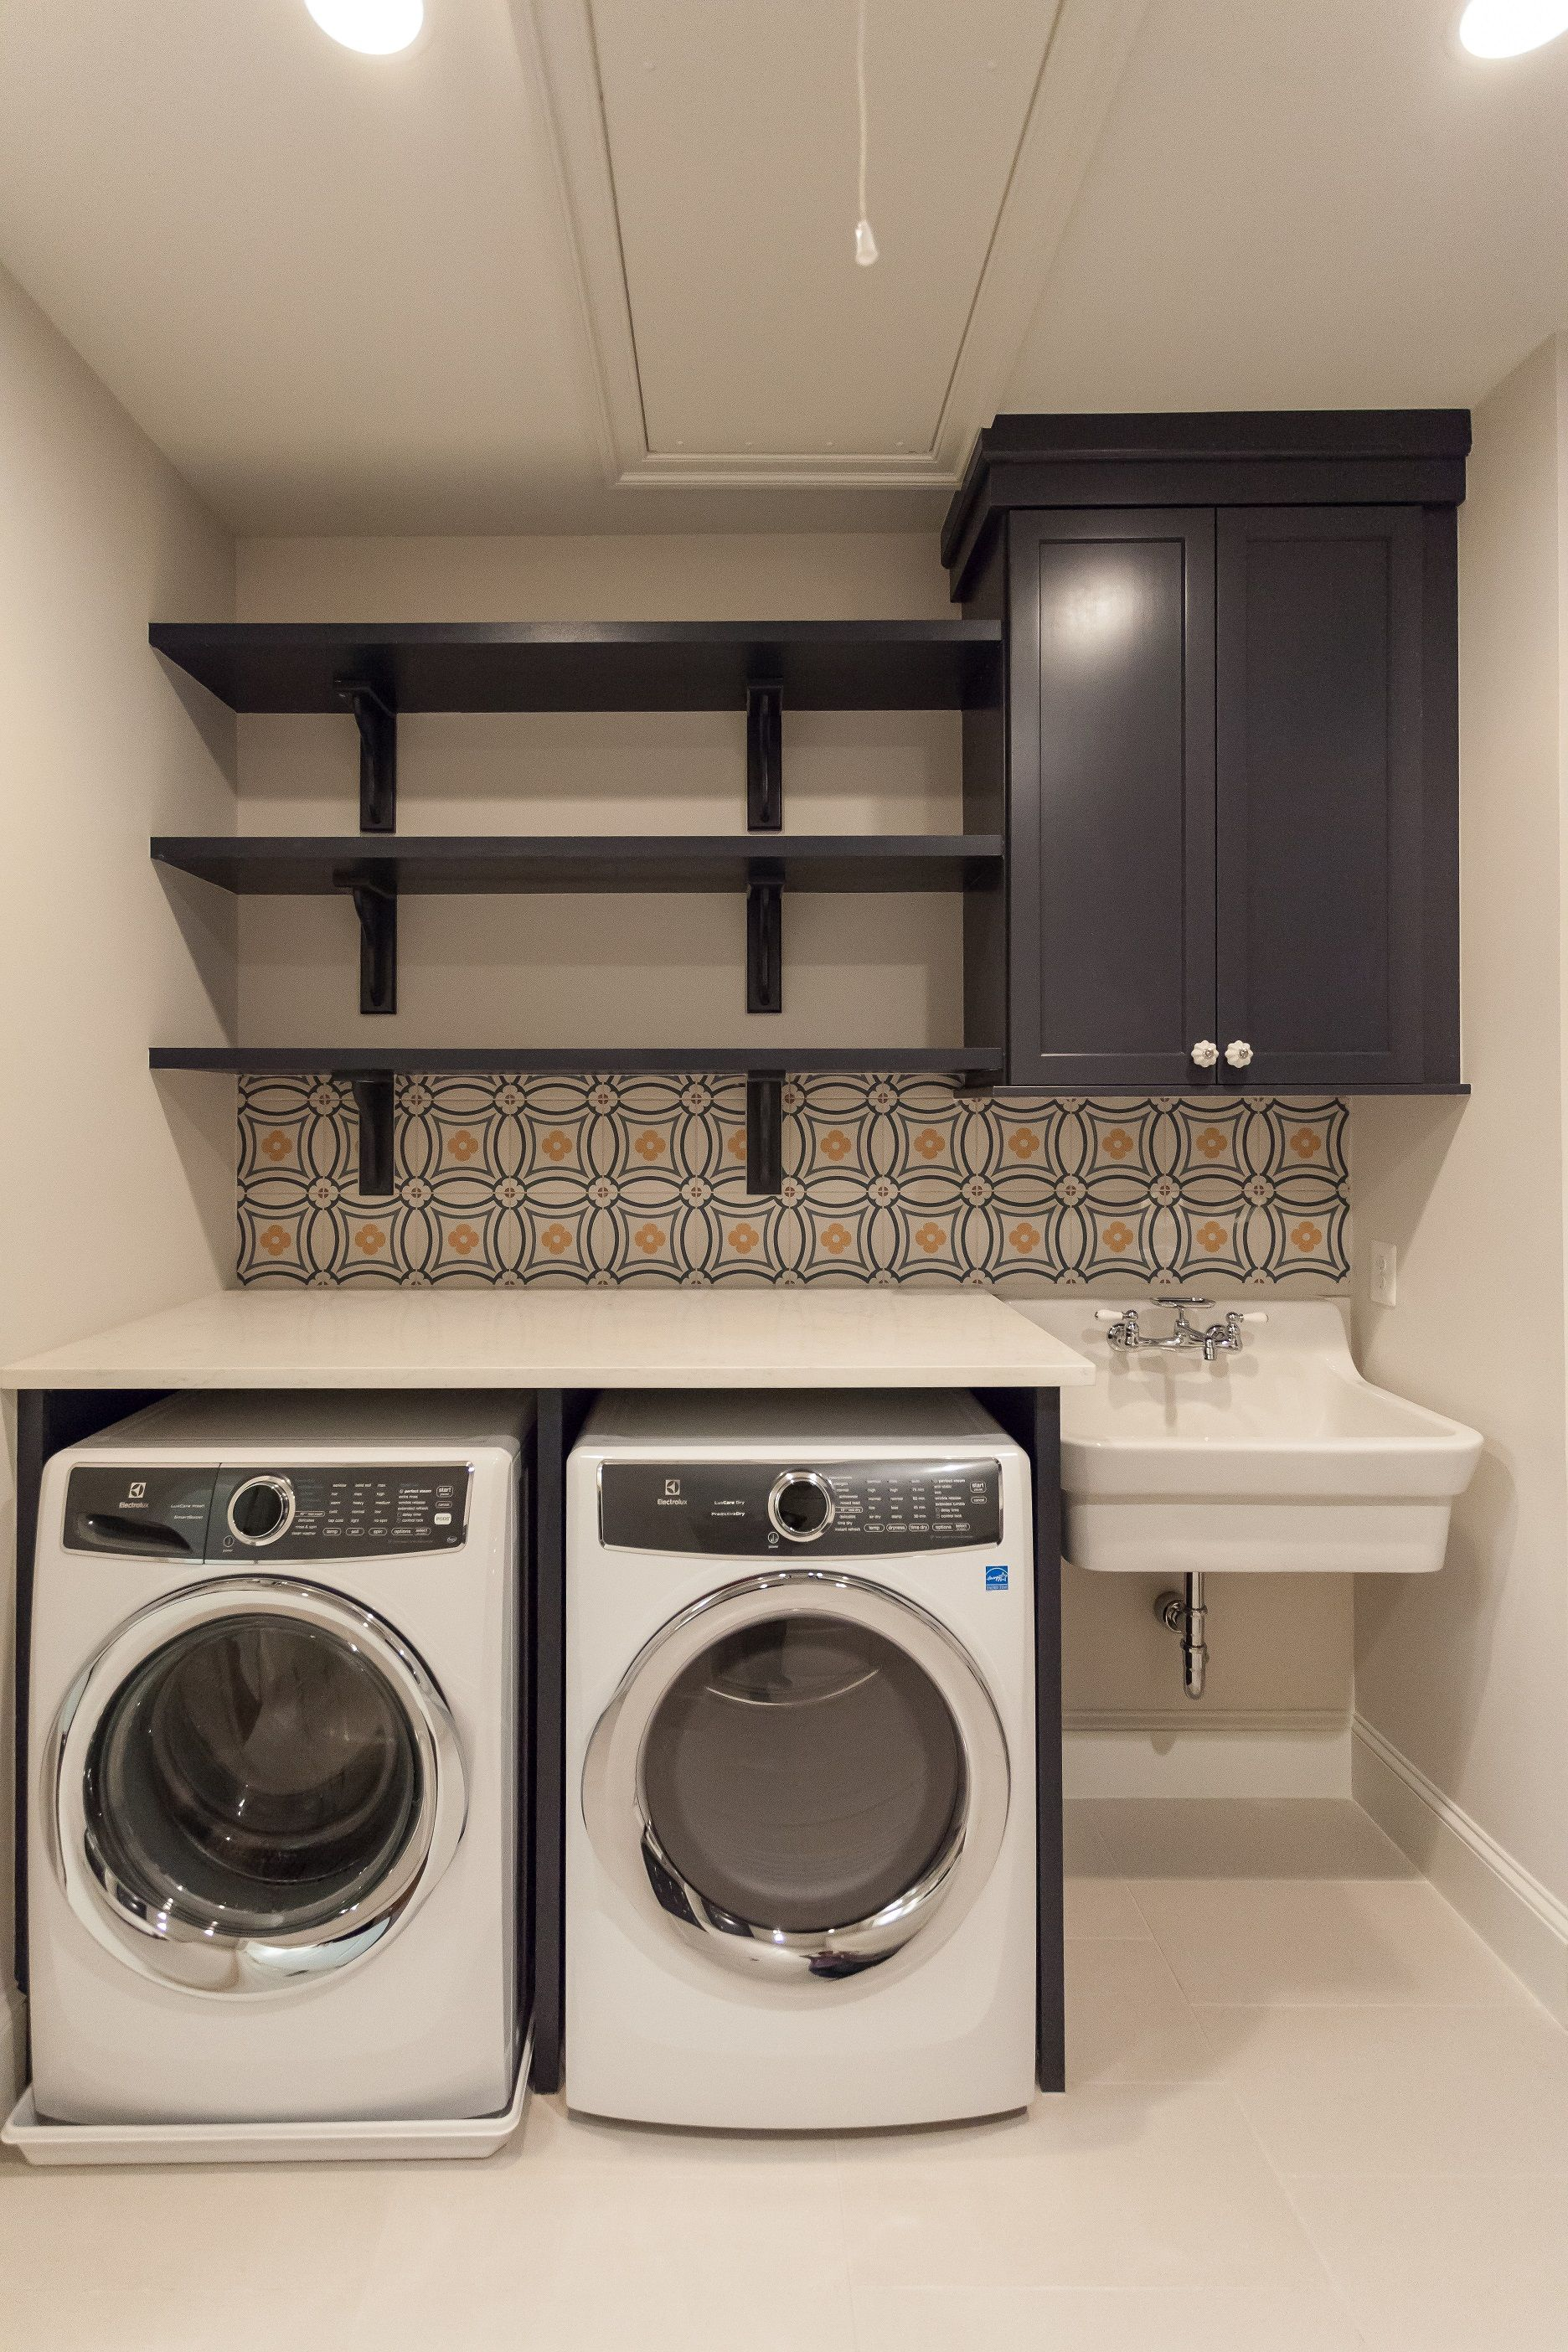 Laundry Room With Purple Cabinets And Open Shelves With